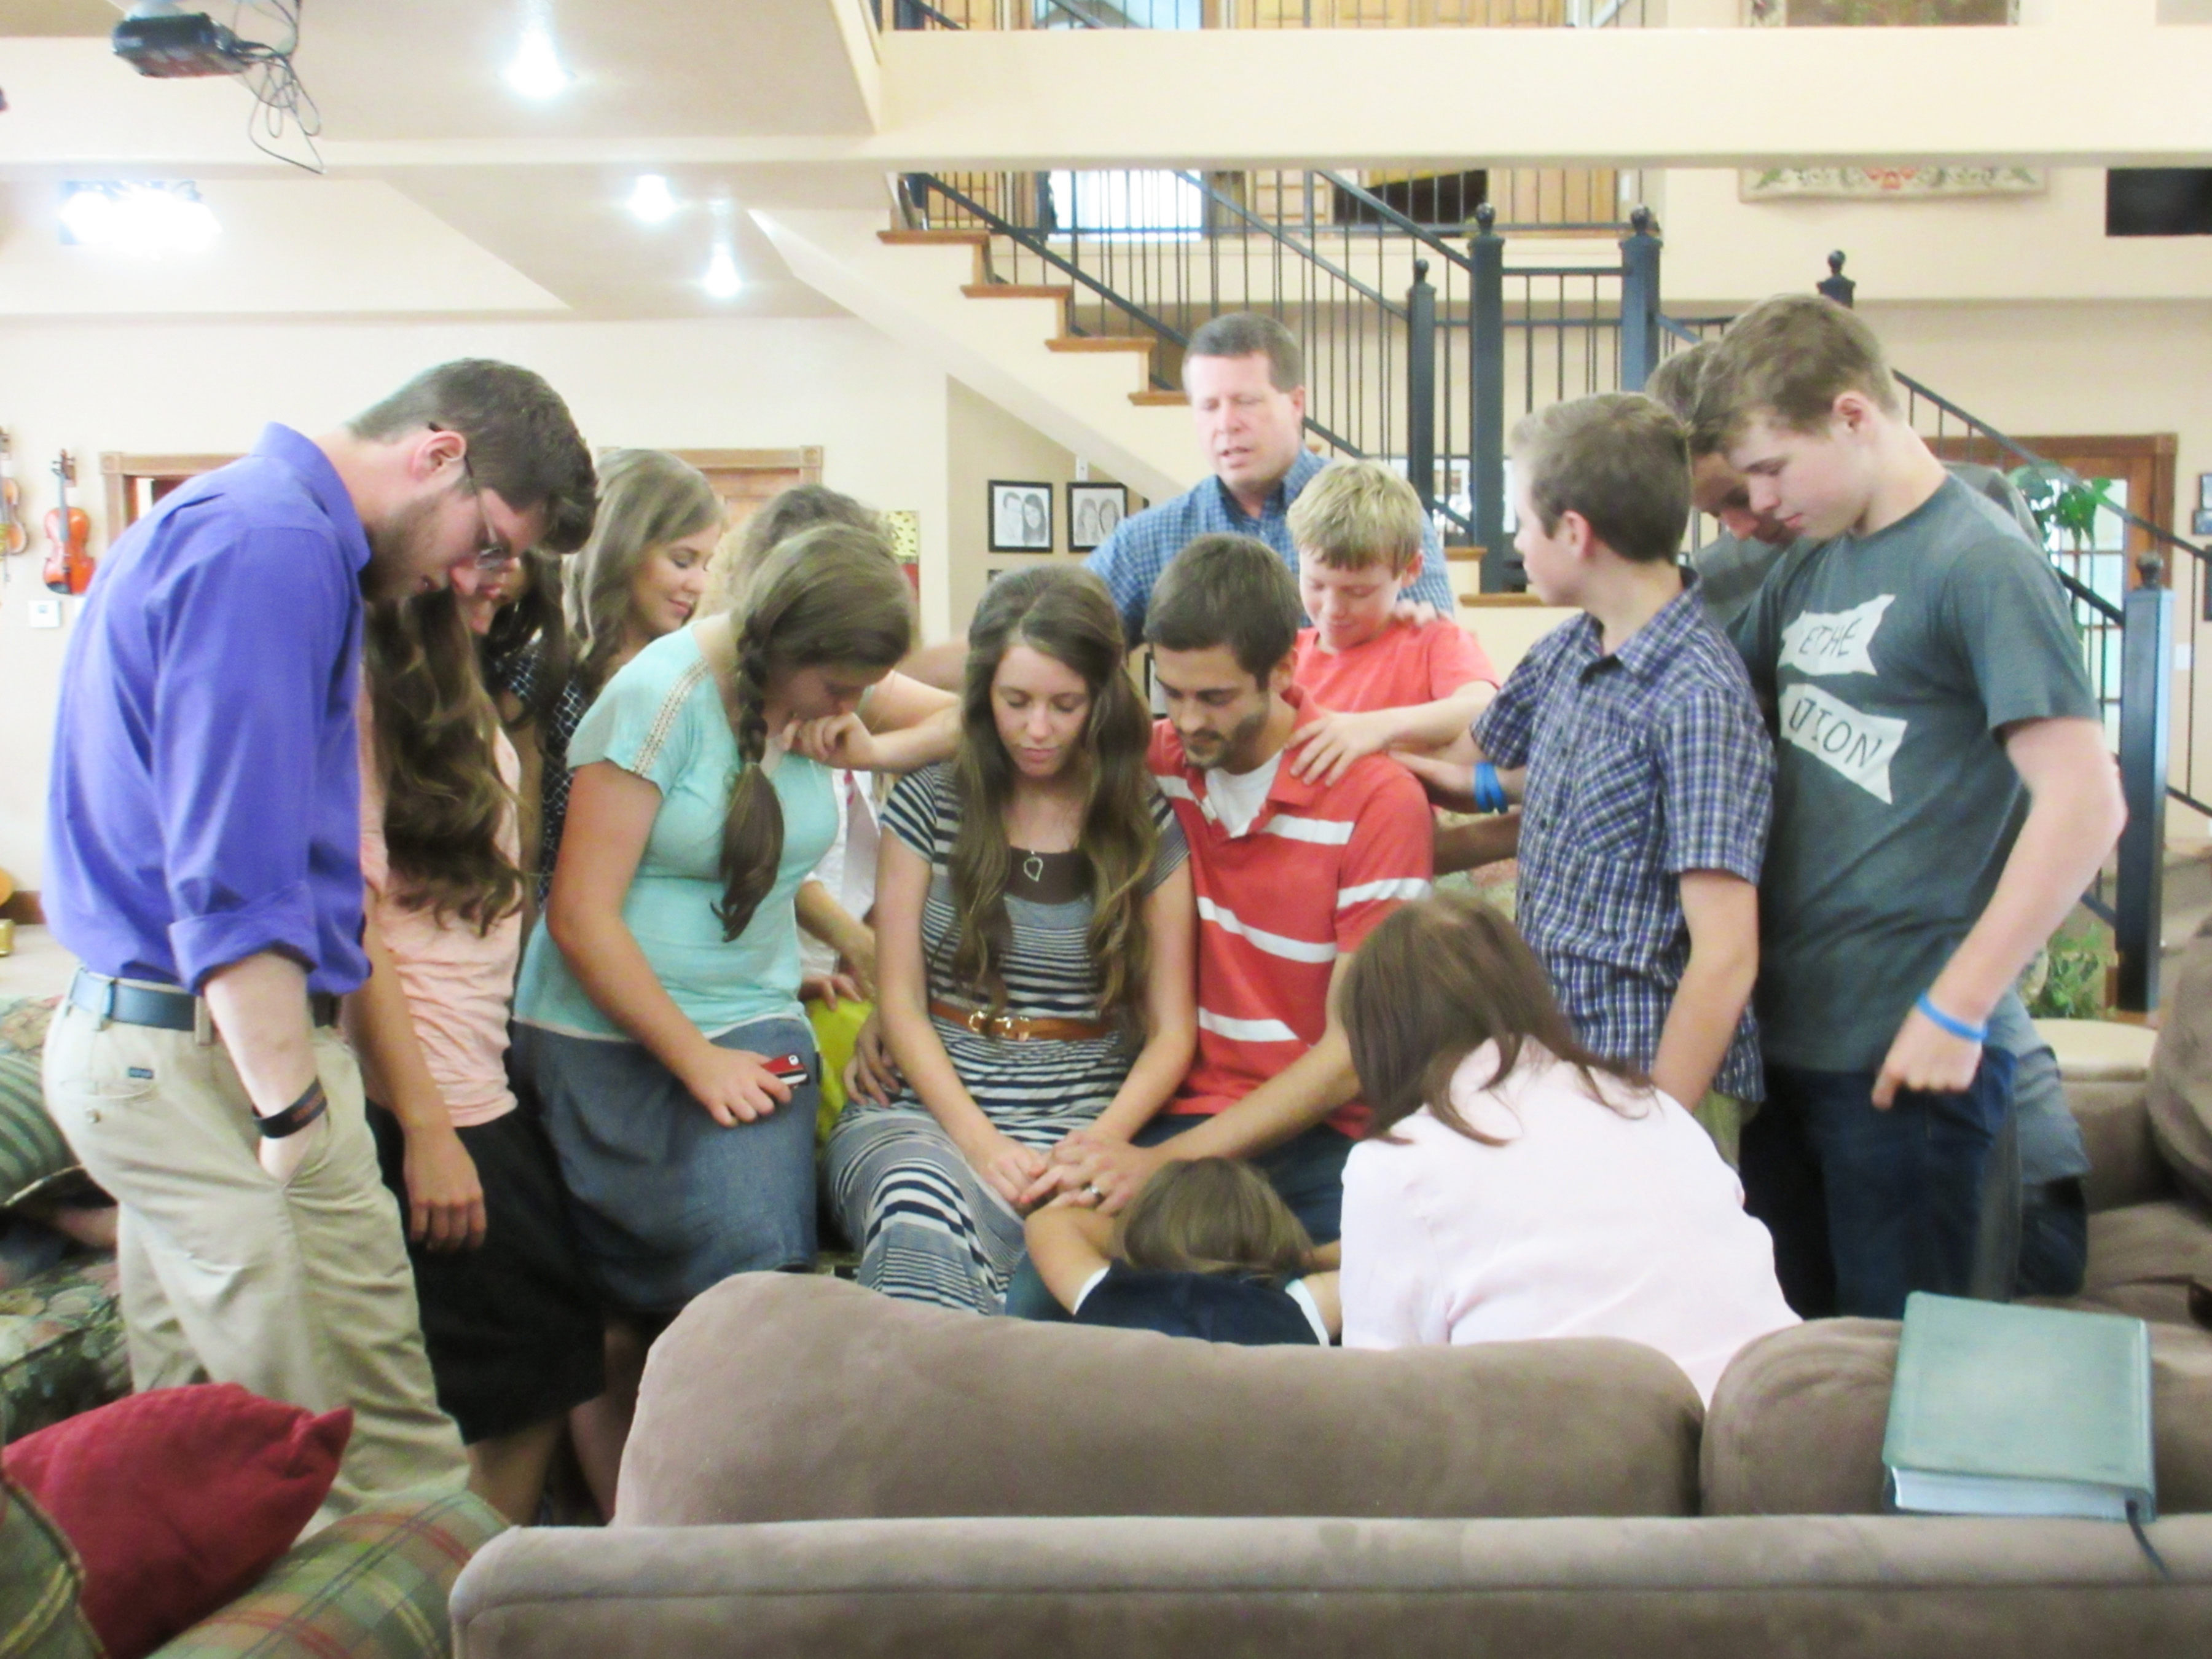 Duggar family reacts to report of raid by Homeland Security Investigations agents at family home